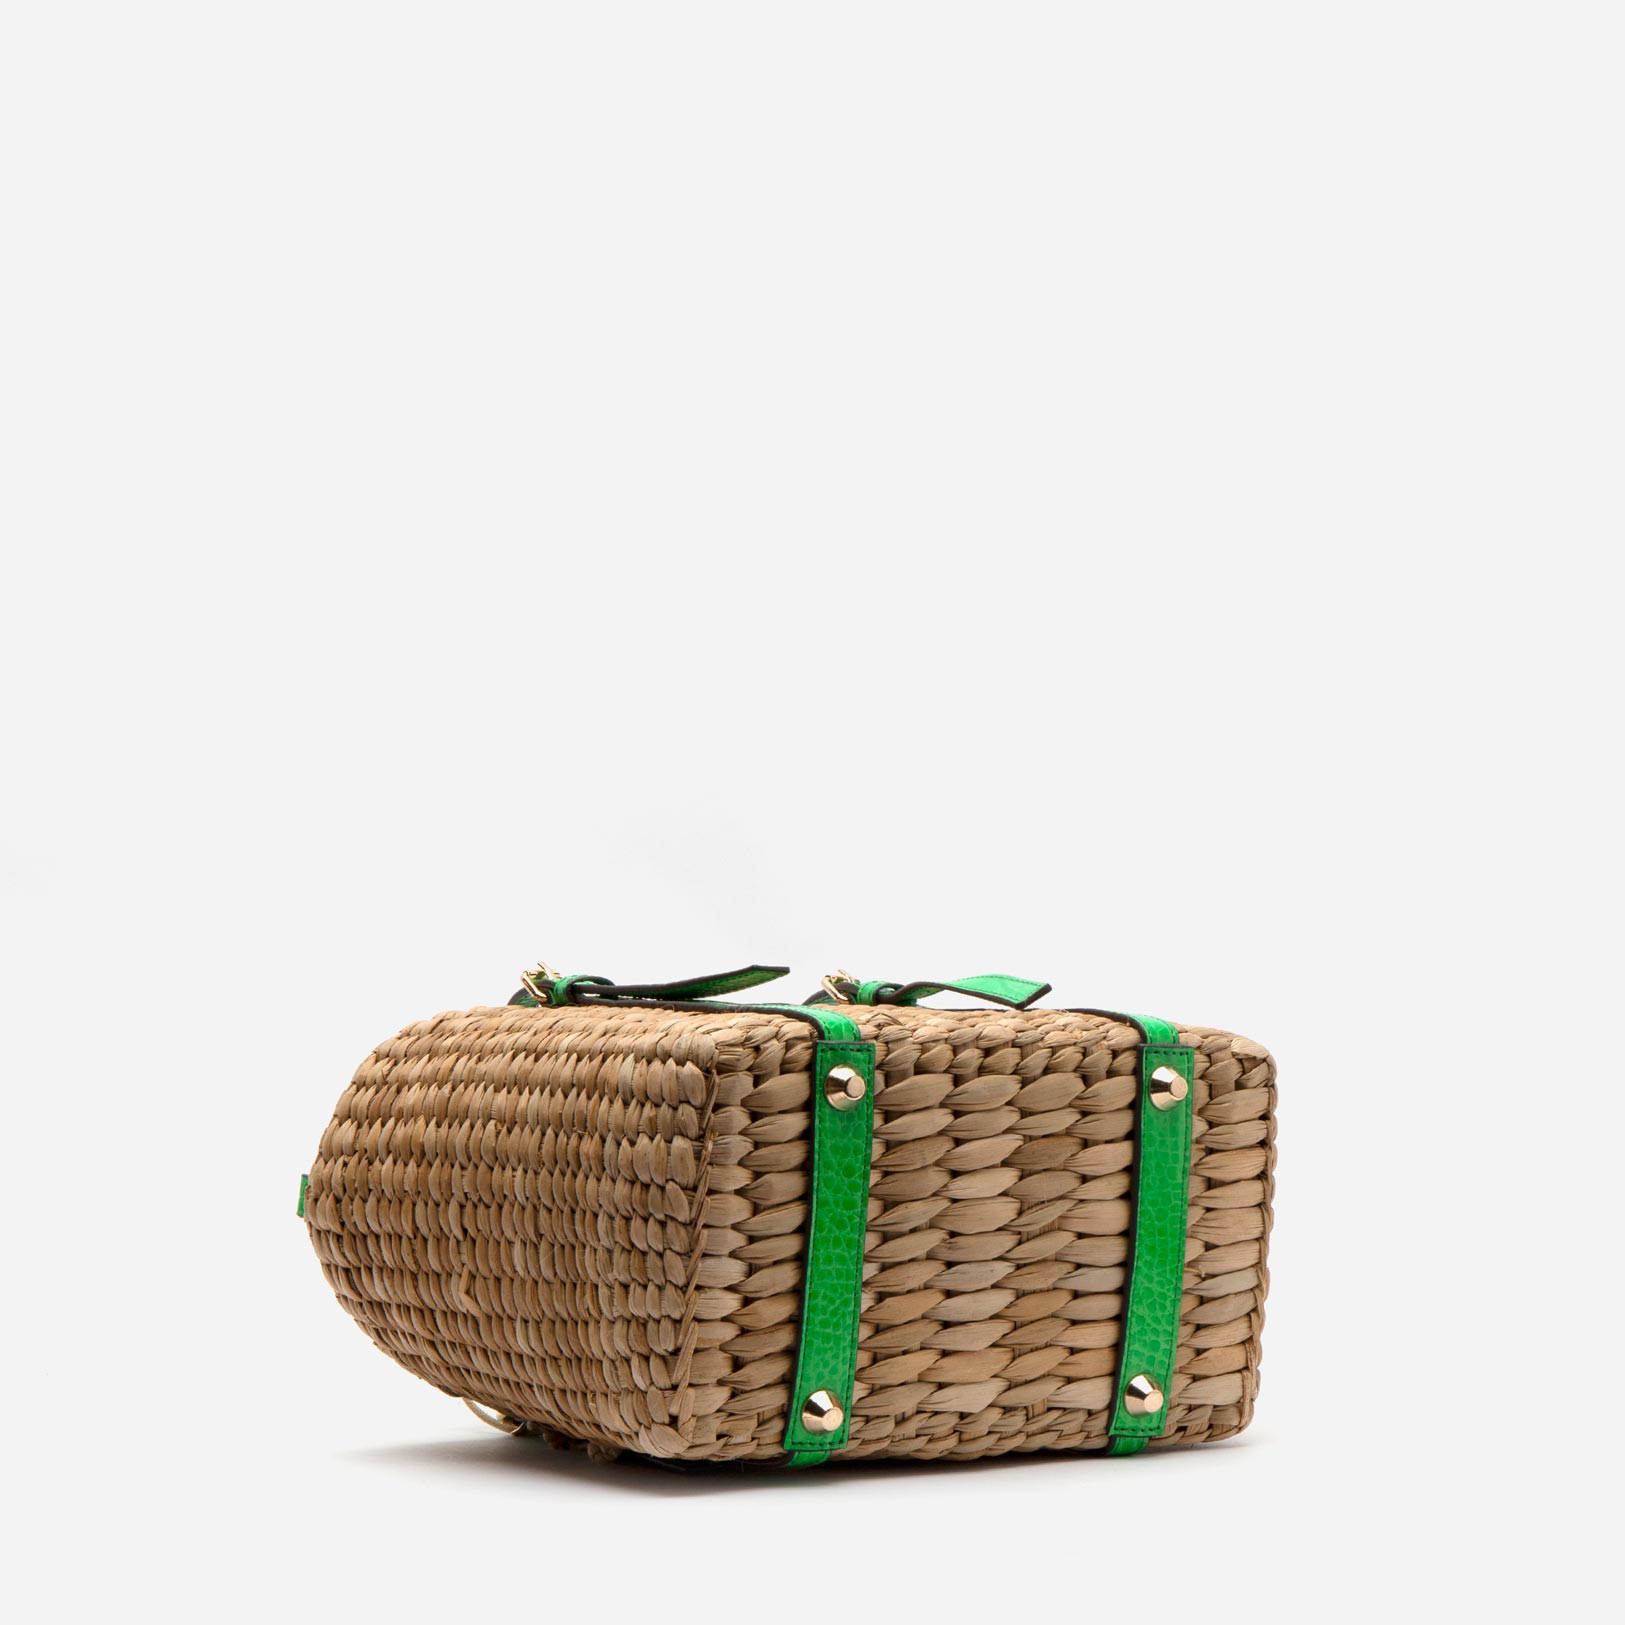 Small Woven Basket Tote Green Croc